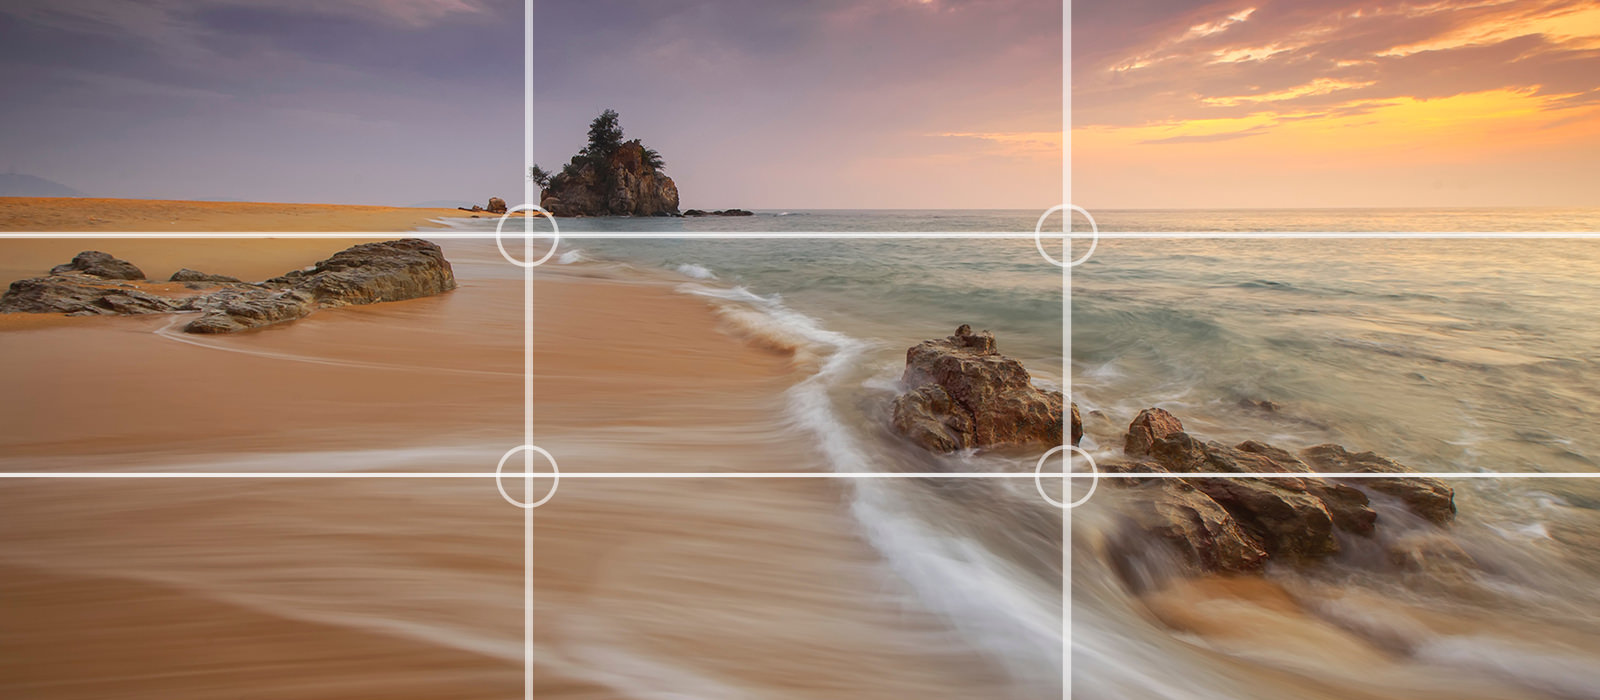 Rule Of Thirds In Photography 4 Tips For Mastery